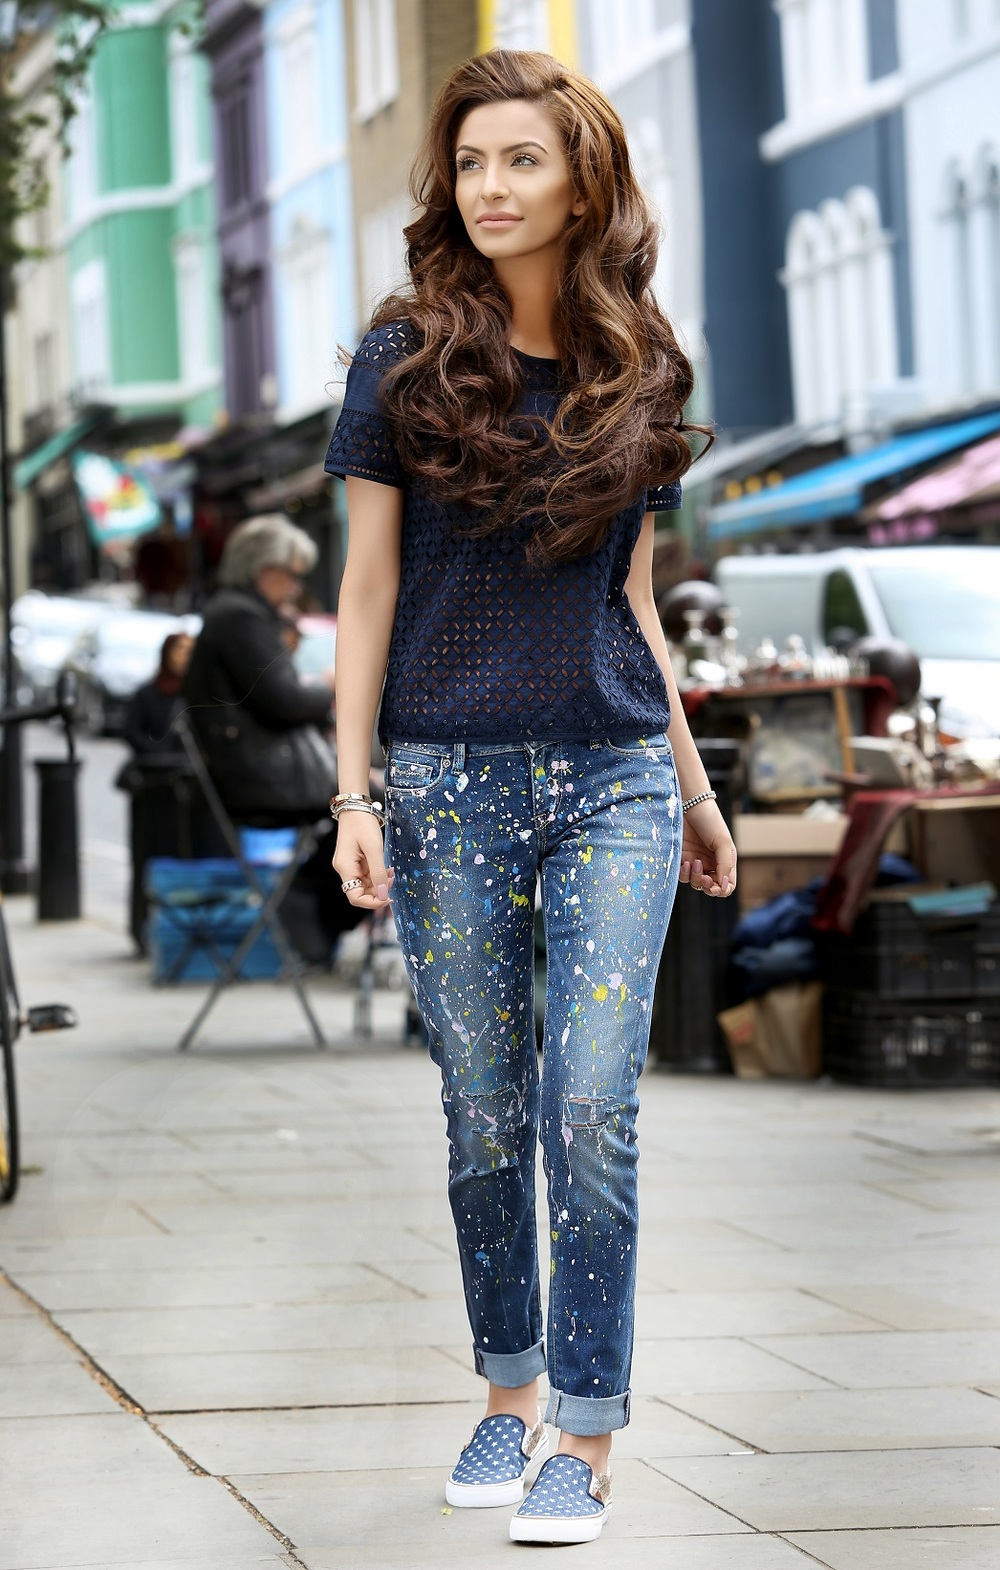 Pepe Jeans Pakistan - Break Your Jeans campaign starring Faryal Makhdoom - Look 1 (1).JPG